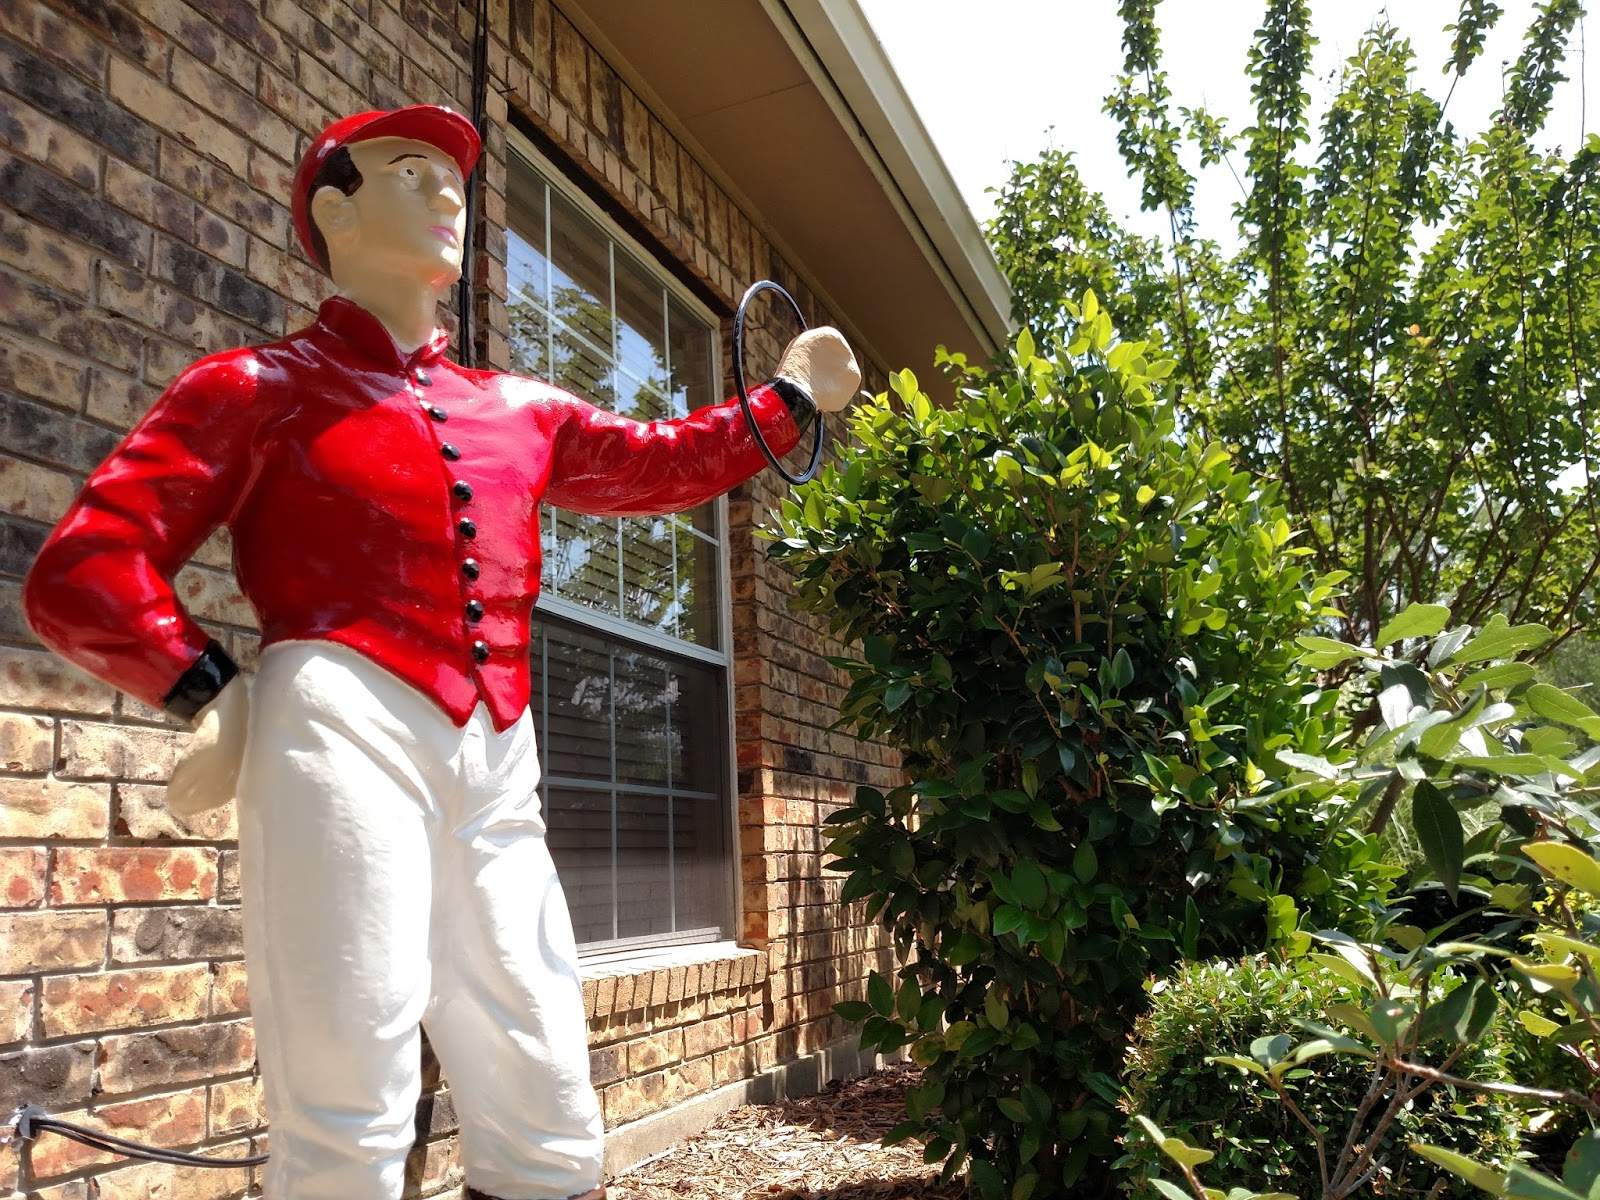 Jockey Statues Lawn Ornaments 100 Images History Of